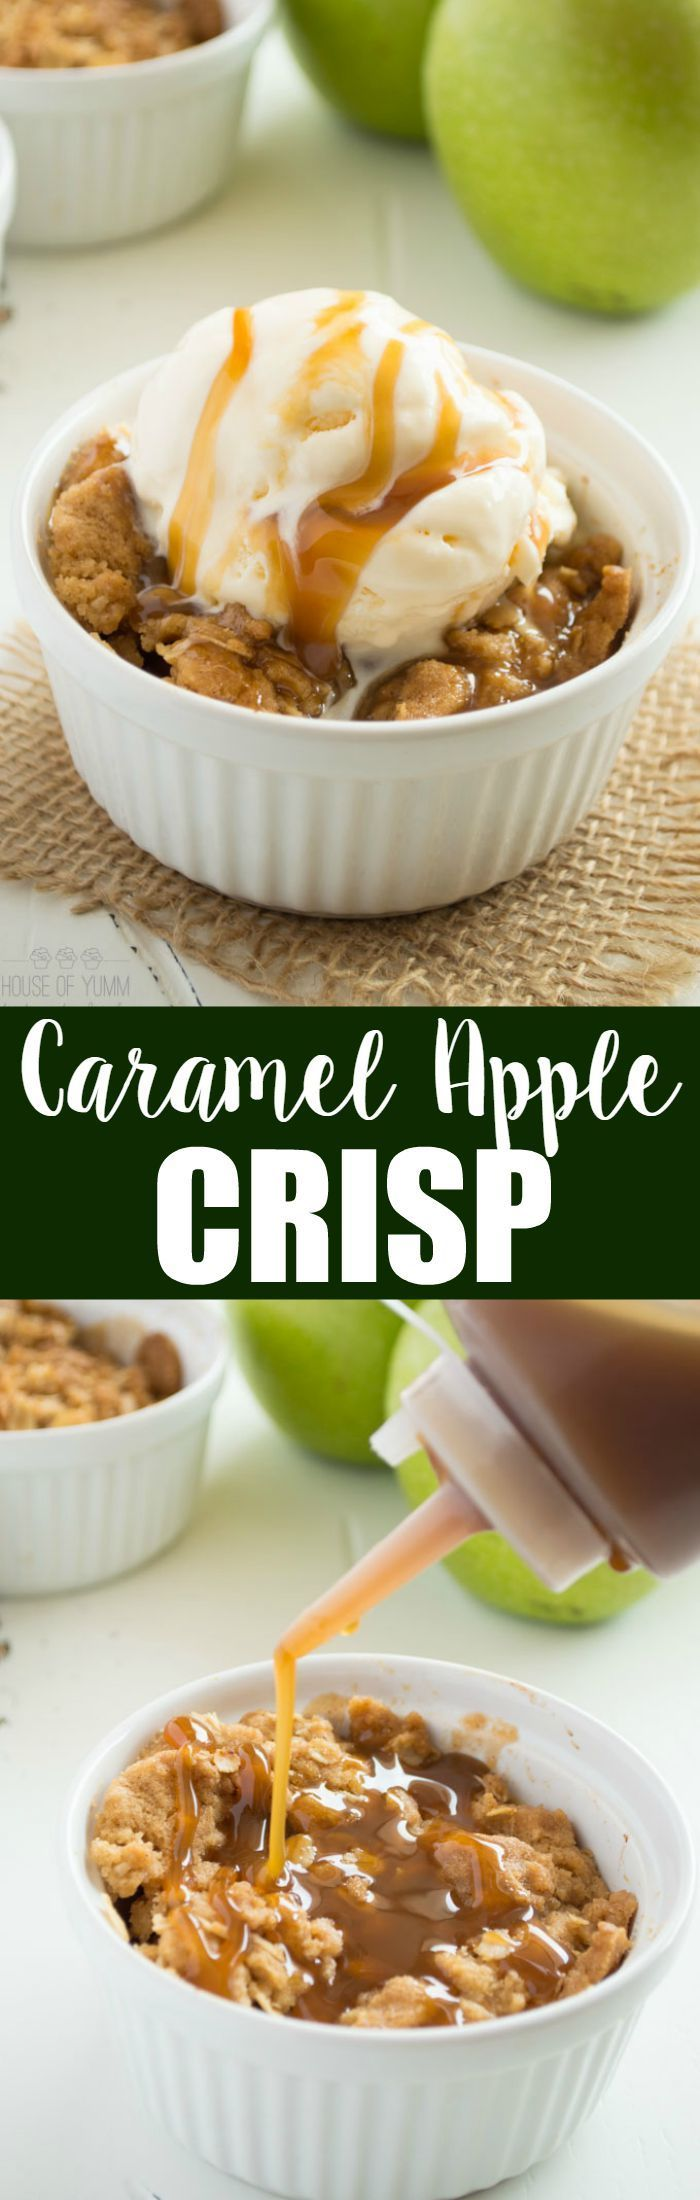 This easy to make caramel apple crisp is the perfect combination of tart apples with an irresistible brown sugar crisp topping. #KitchenAidContest #ad